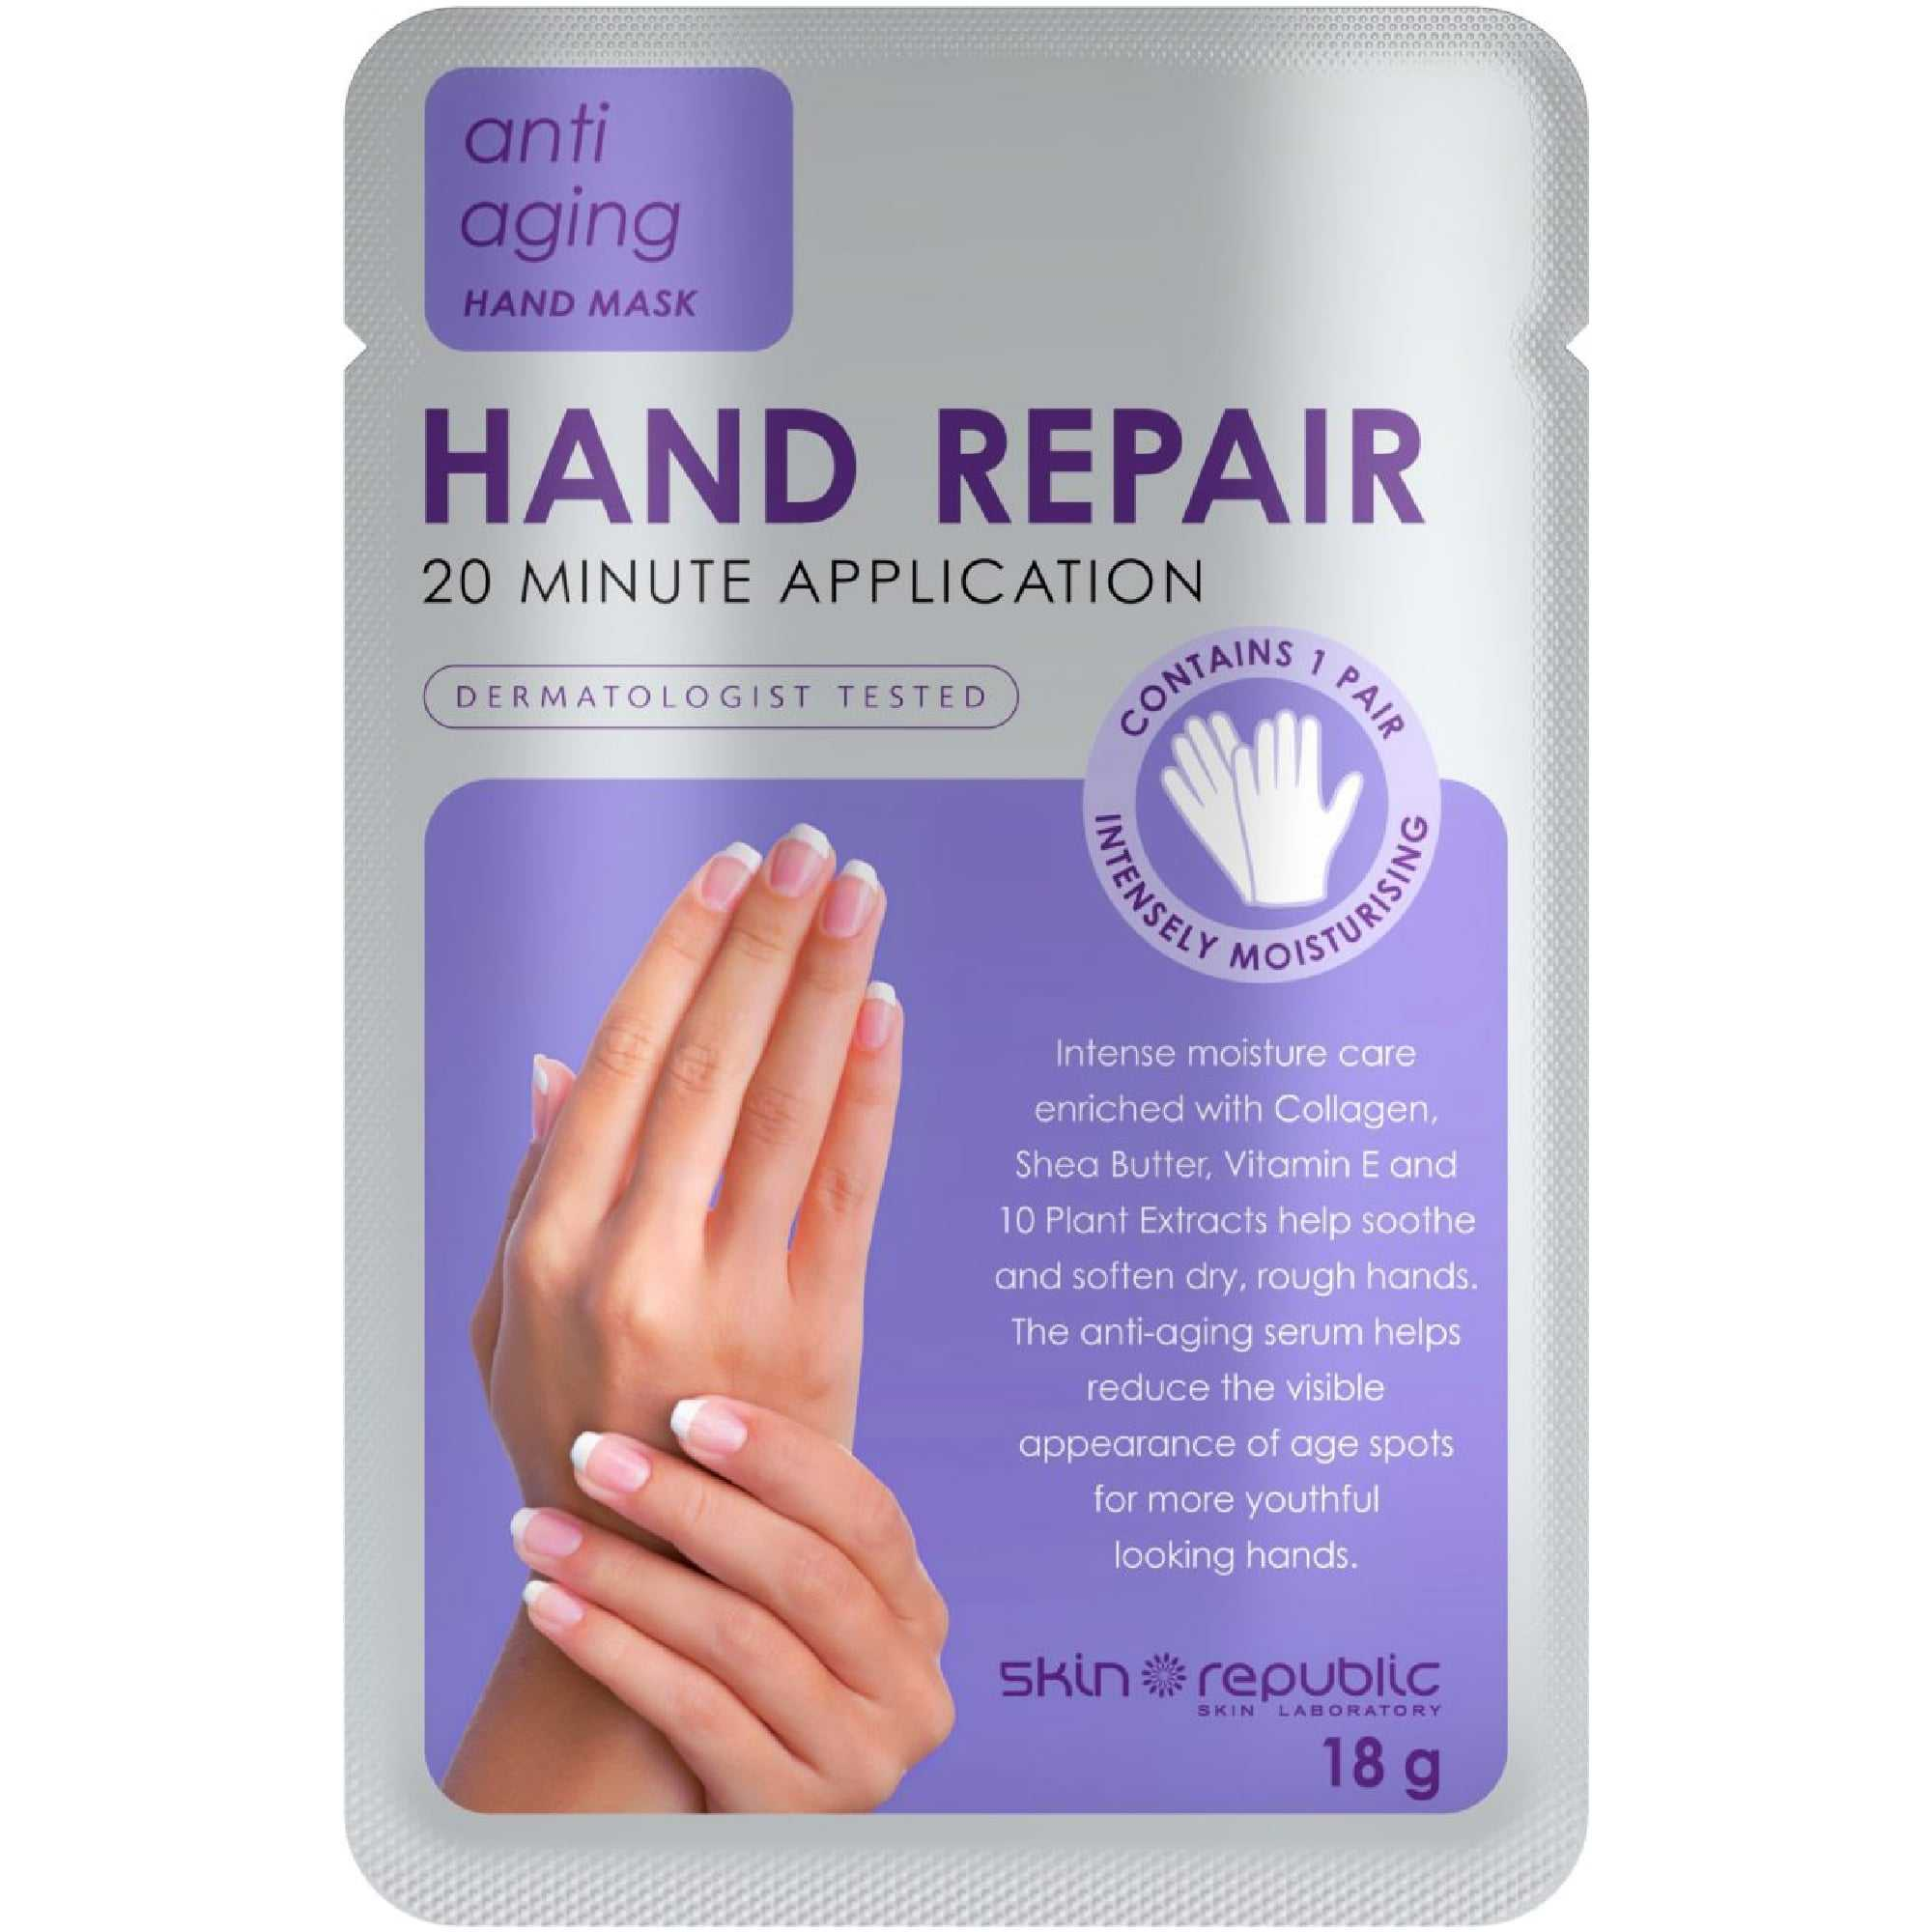 skin-republic-anti-aging-hand-mask-hand-repair-18g-p21236-87590_zoom